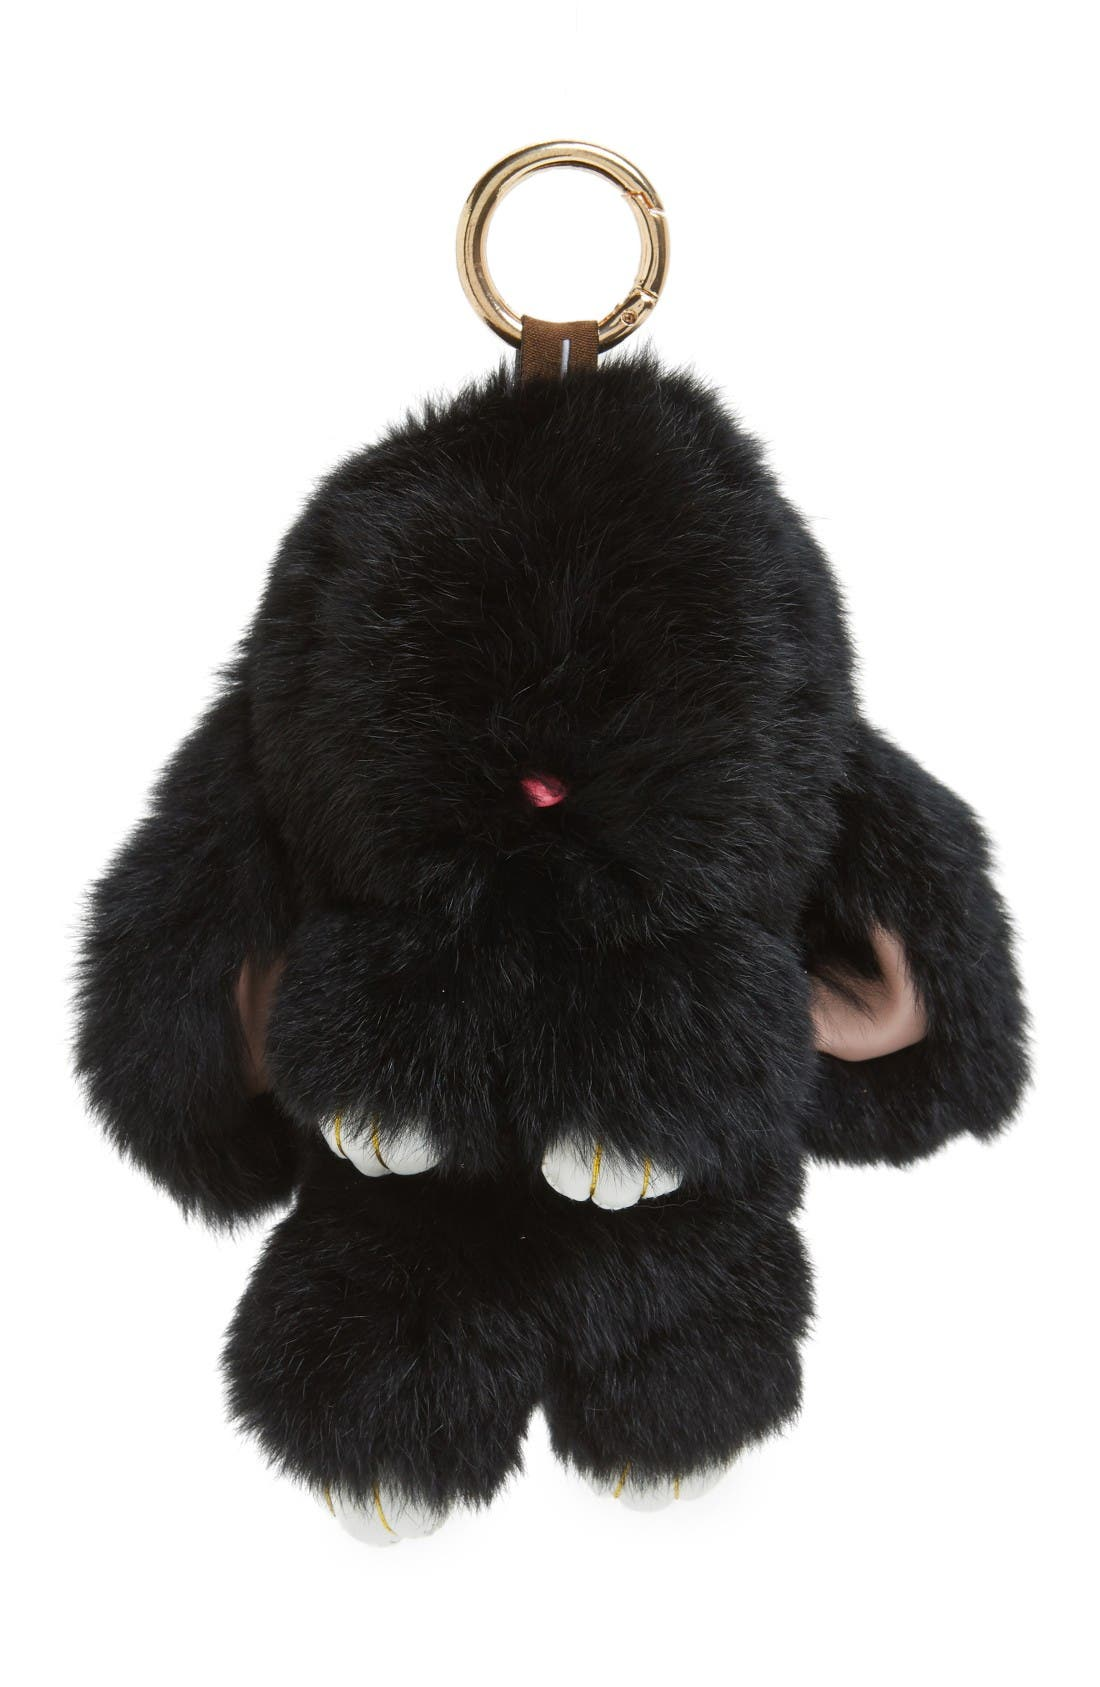 Main Image - Natasha Couture Genuine Rabbit Fur Bag Charm